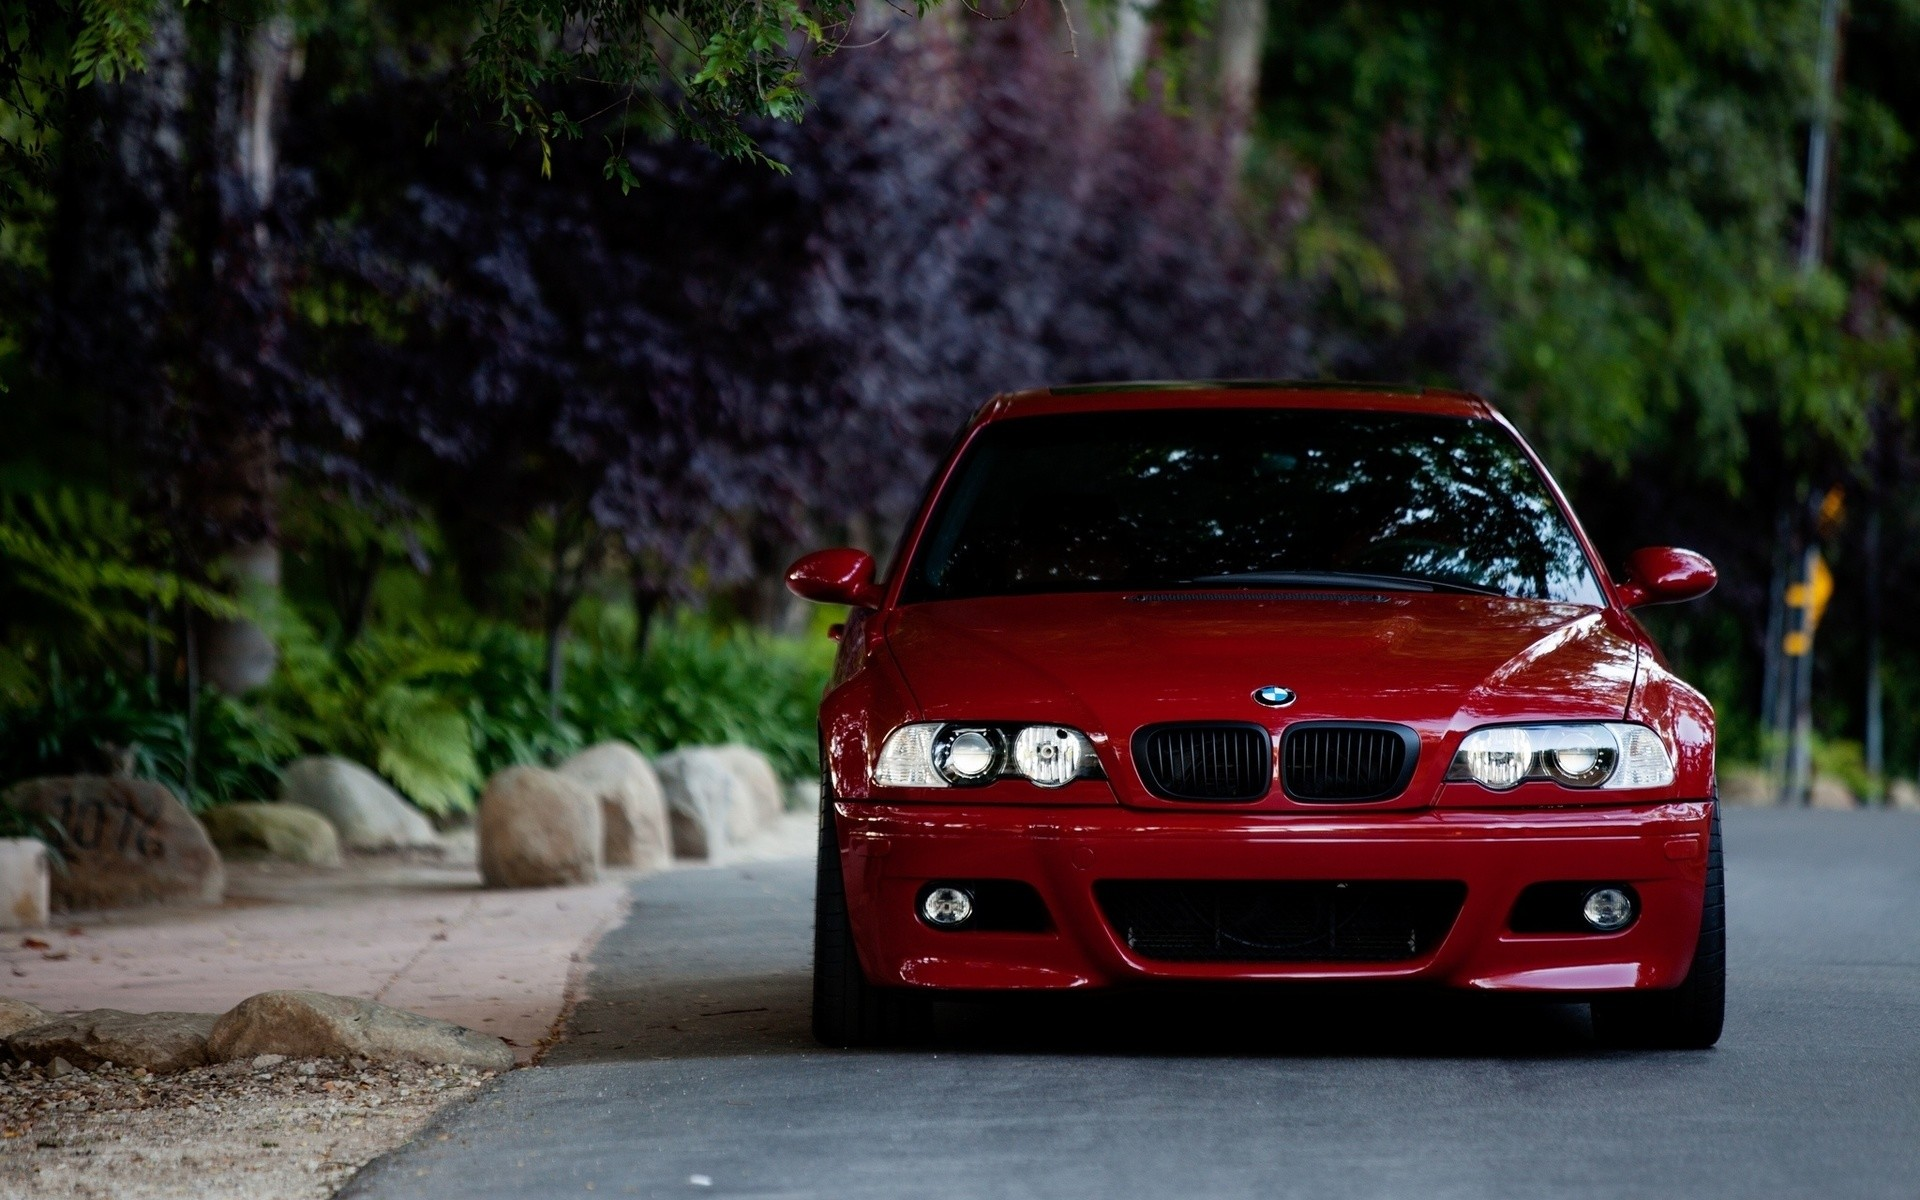 1920x1200 Bmw E46 M3 Wallpapers HD